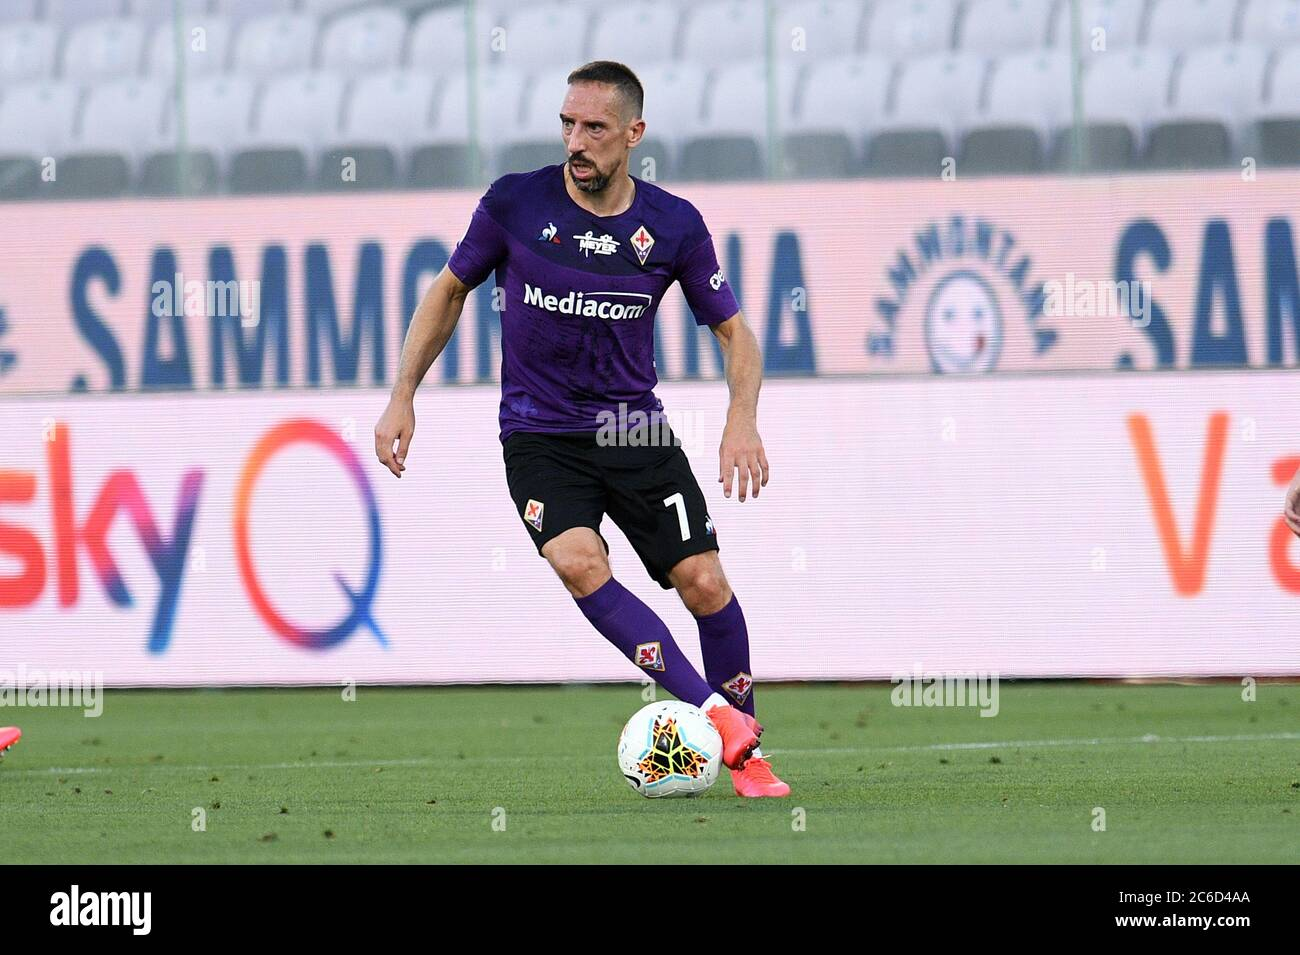 Franck Ribery Of Acf Fiorentina In Action During Acf Fiorentina Vs Cagliari Florence Italy 08 Jul 2020 Stock Photo Alamy